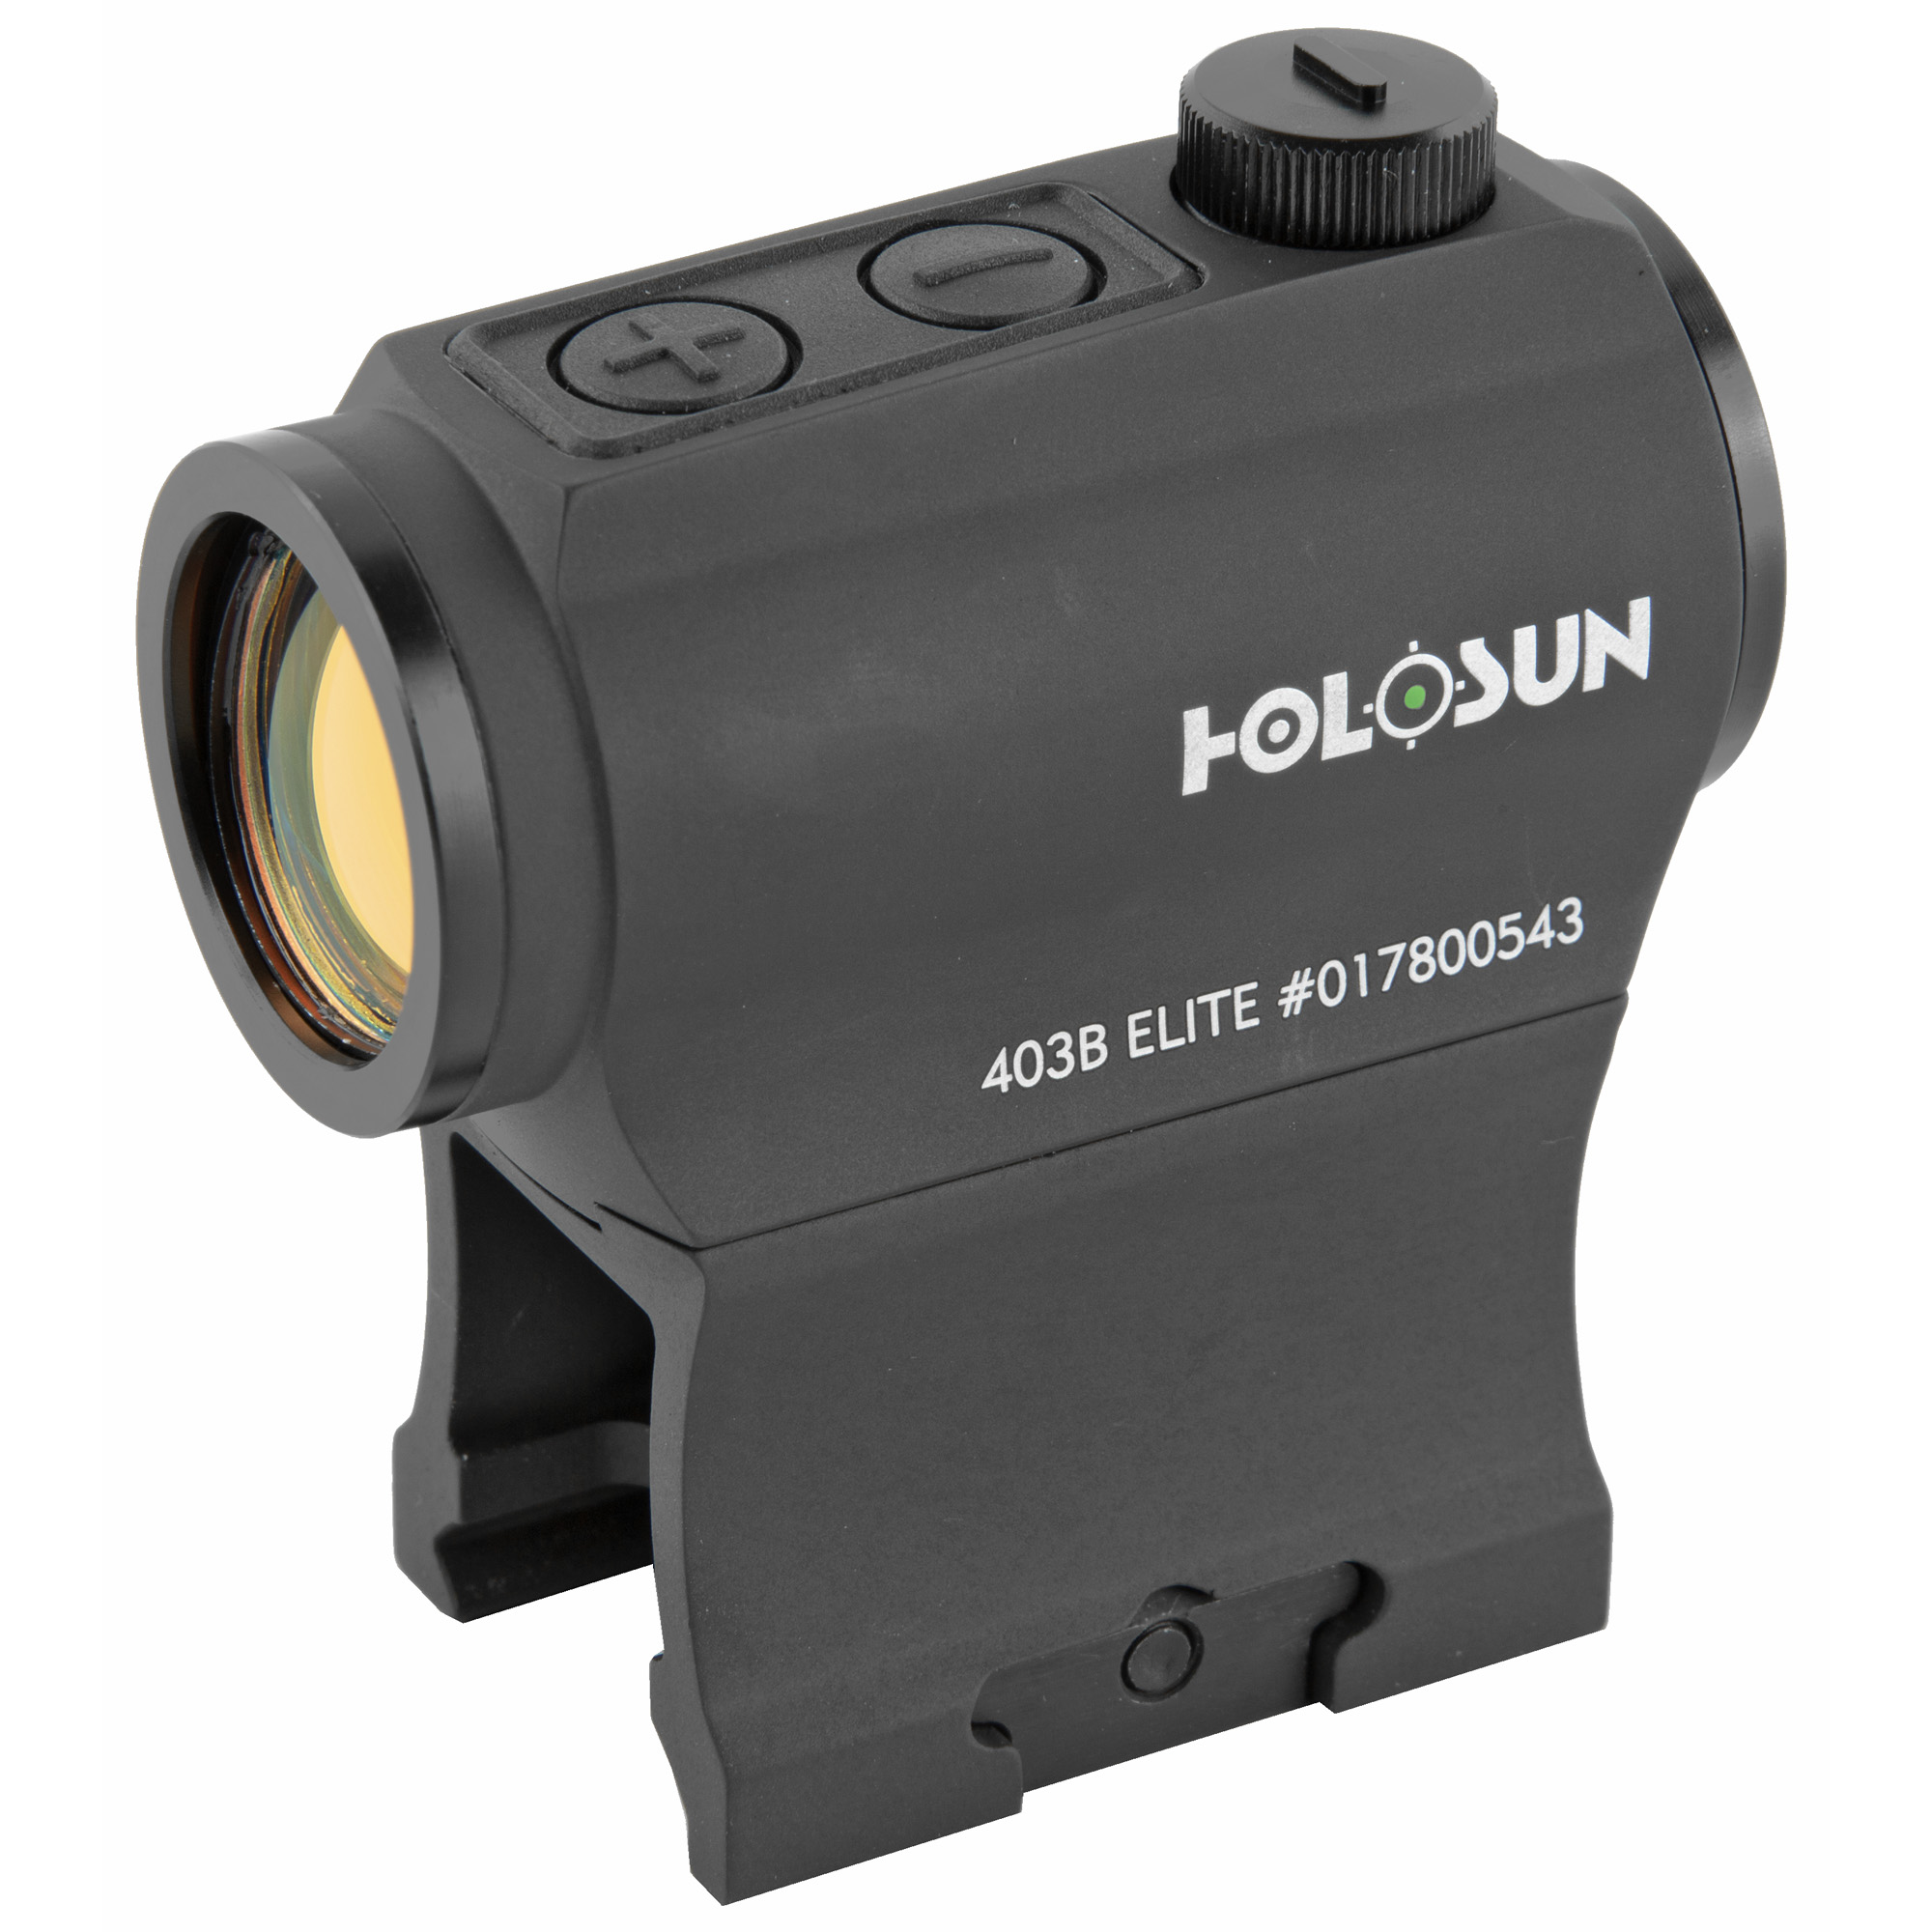 """The HE403B-GR is an Elite version of our HS403B small compact micro red dot optic. Employing Holosun's new Green LED technology"""" the lifetime for one CR2032 battery can be up to 5 years and has up to 4x more efficiency when used the high brightness settings! This optic features our """"Shake Awake"""" technology that powers the optic on with slight movement of the unit. It may be installed on various firearms such as shotguns"""" pistols """"air rifles and crossbows. The HE403B-GR is compatible with standard mounts."""